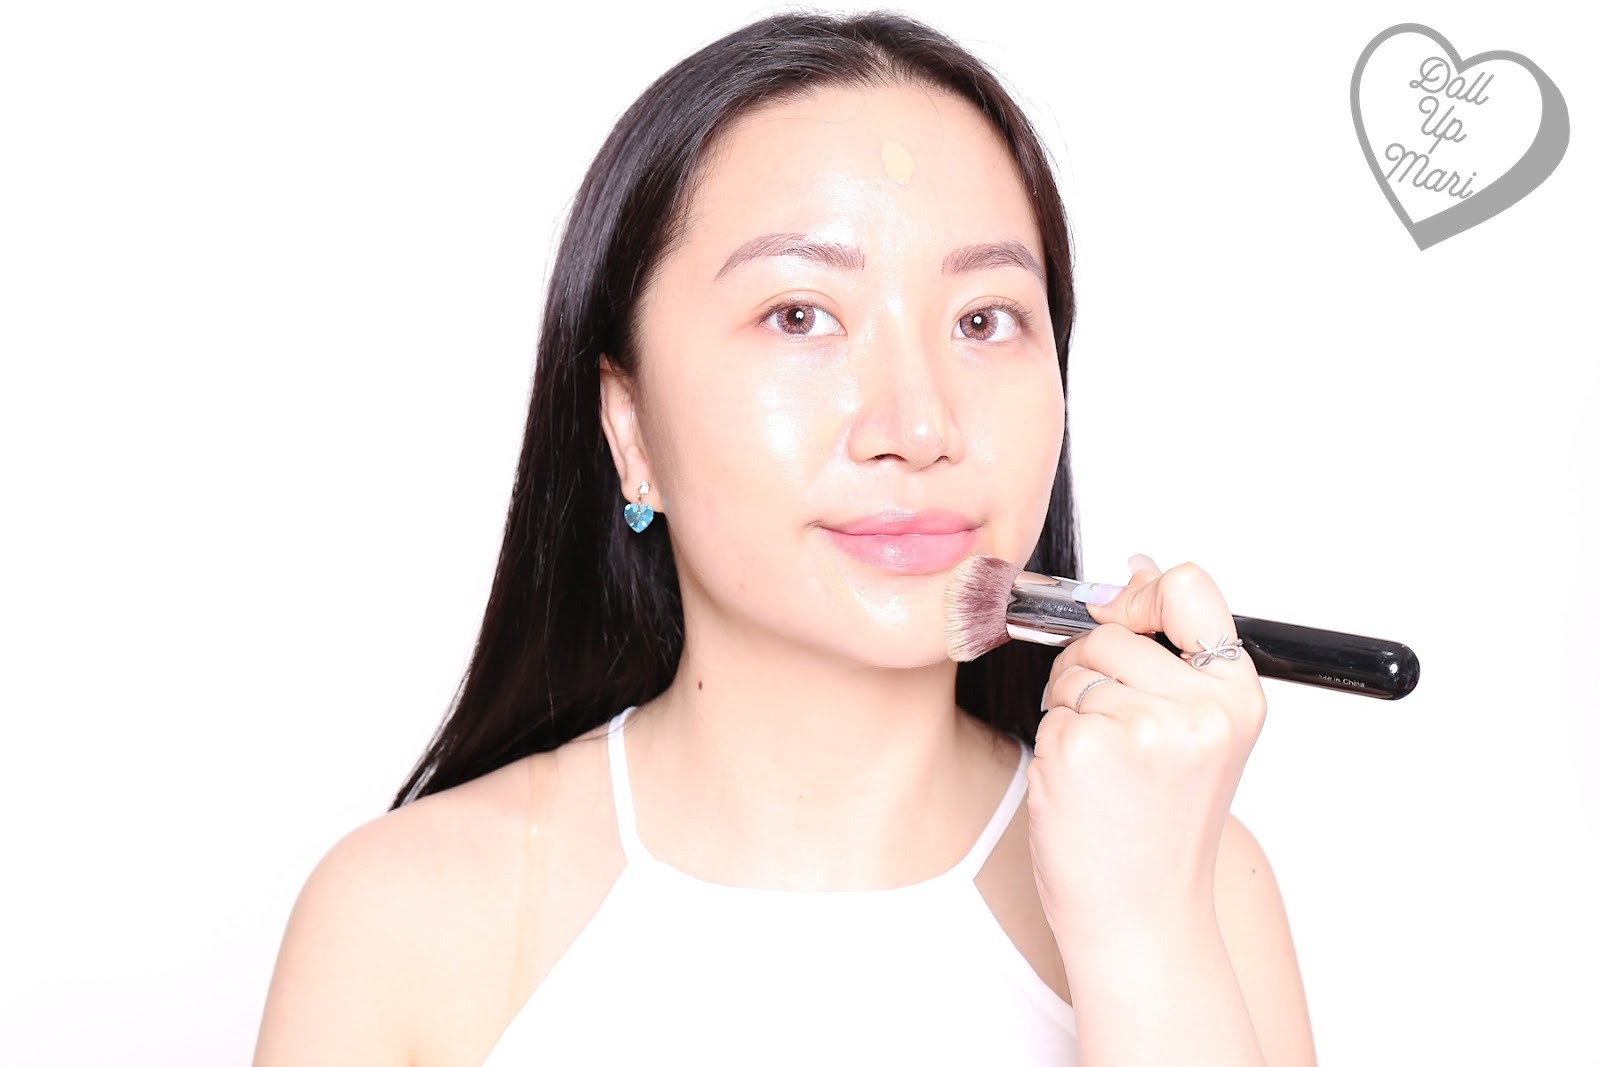 Blending L'Oréal Paris Infallible 24HR Fresh Wear Liquid Foundation SPF25PA+++ in shade Golden Beige using a kabuki brush